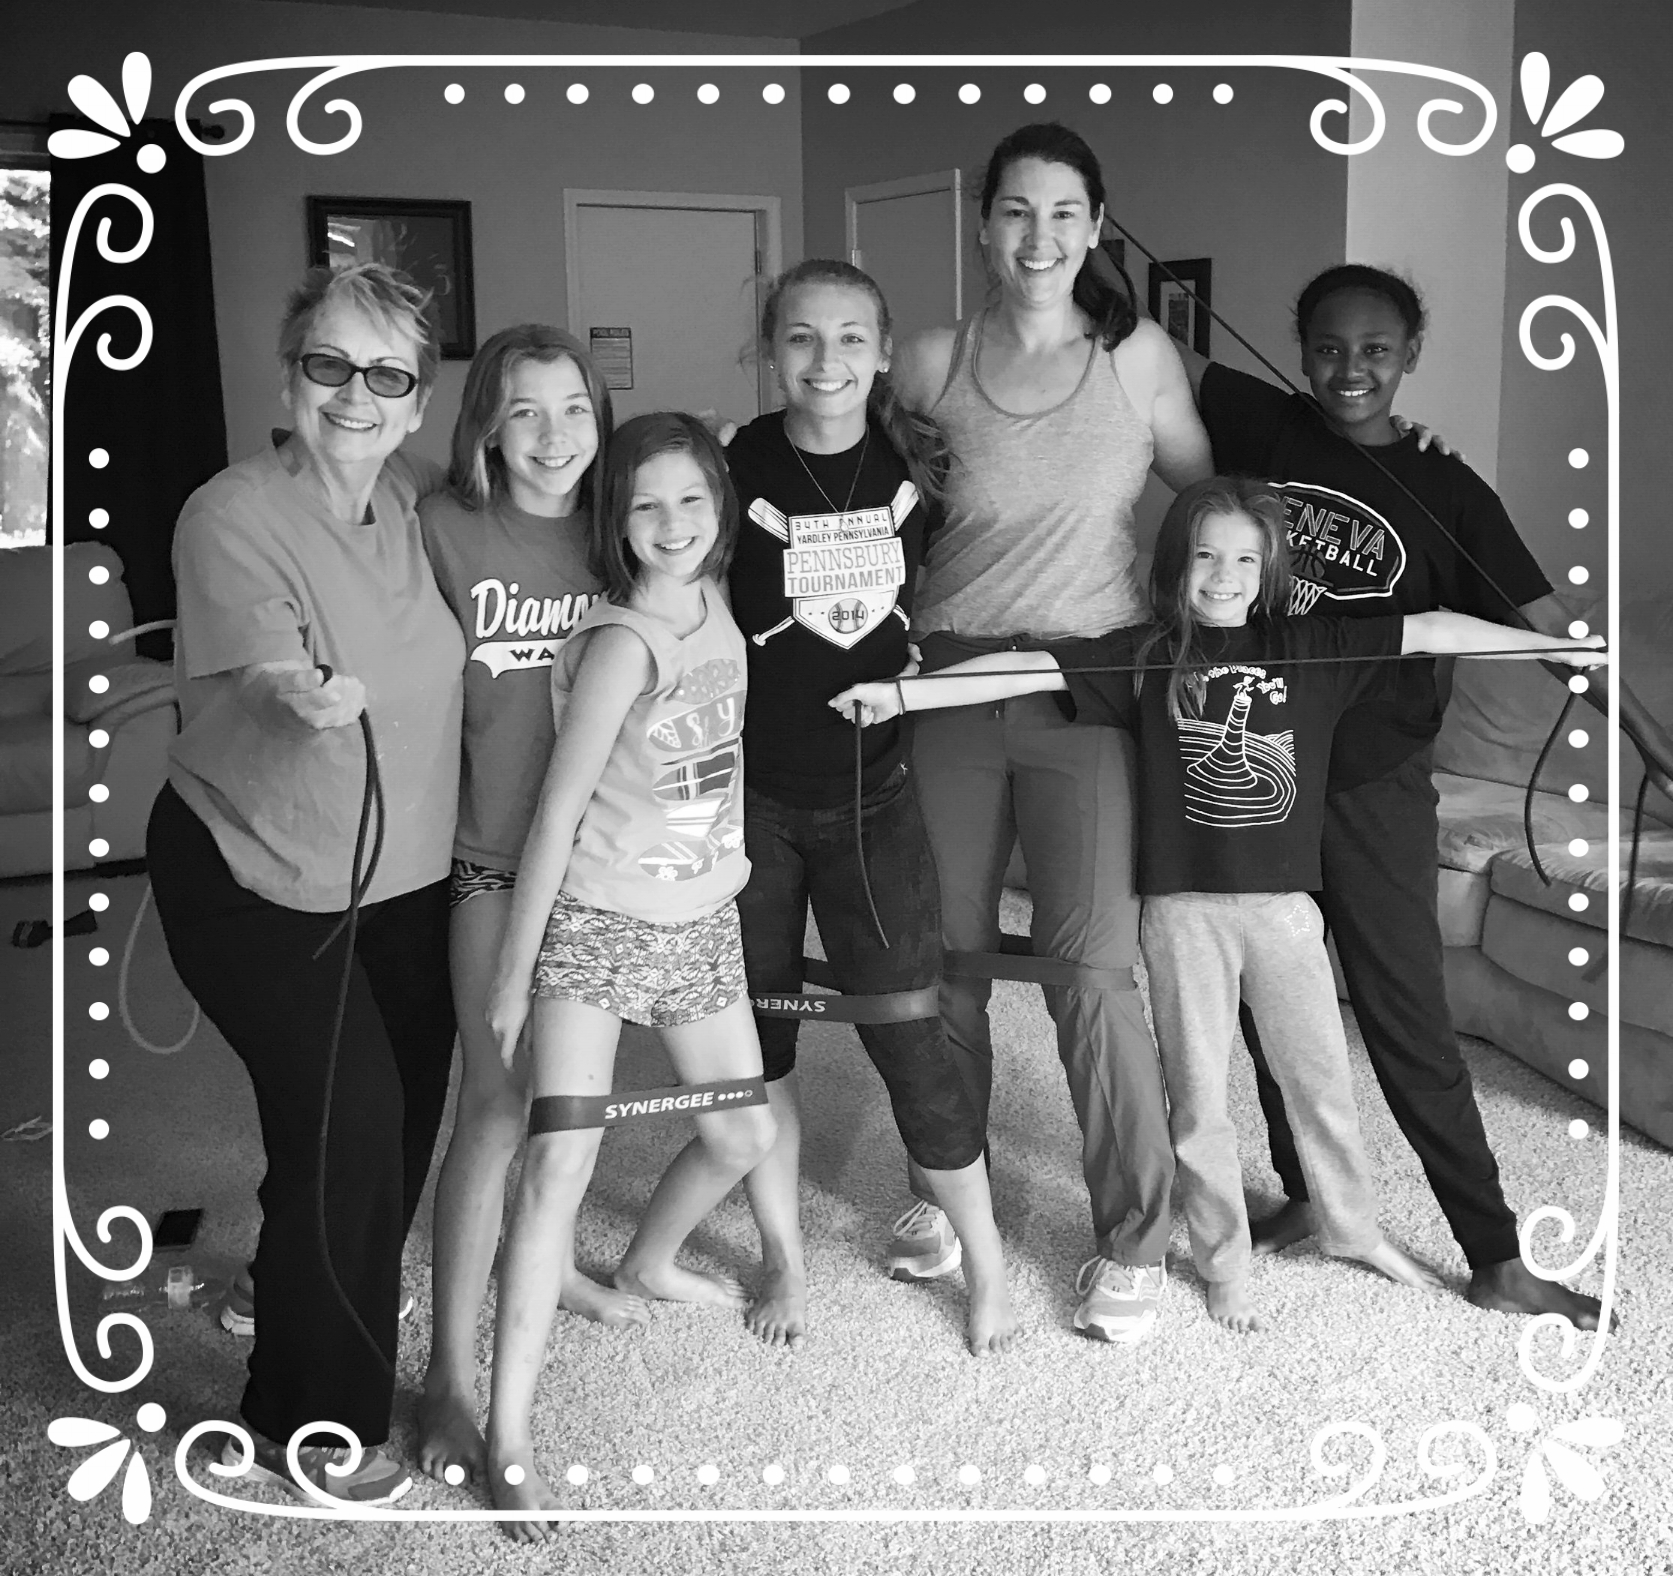 My Michigan vacation crew! - Every morning, my family and I worked out using our 5 Day Vacation Workout Plan. It was a great way to start each day before we headed for the beach!